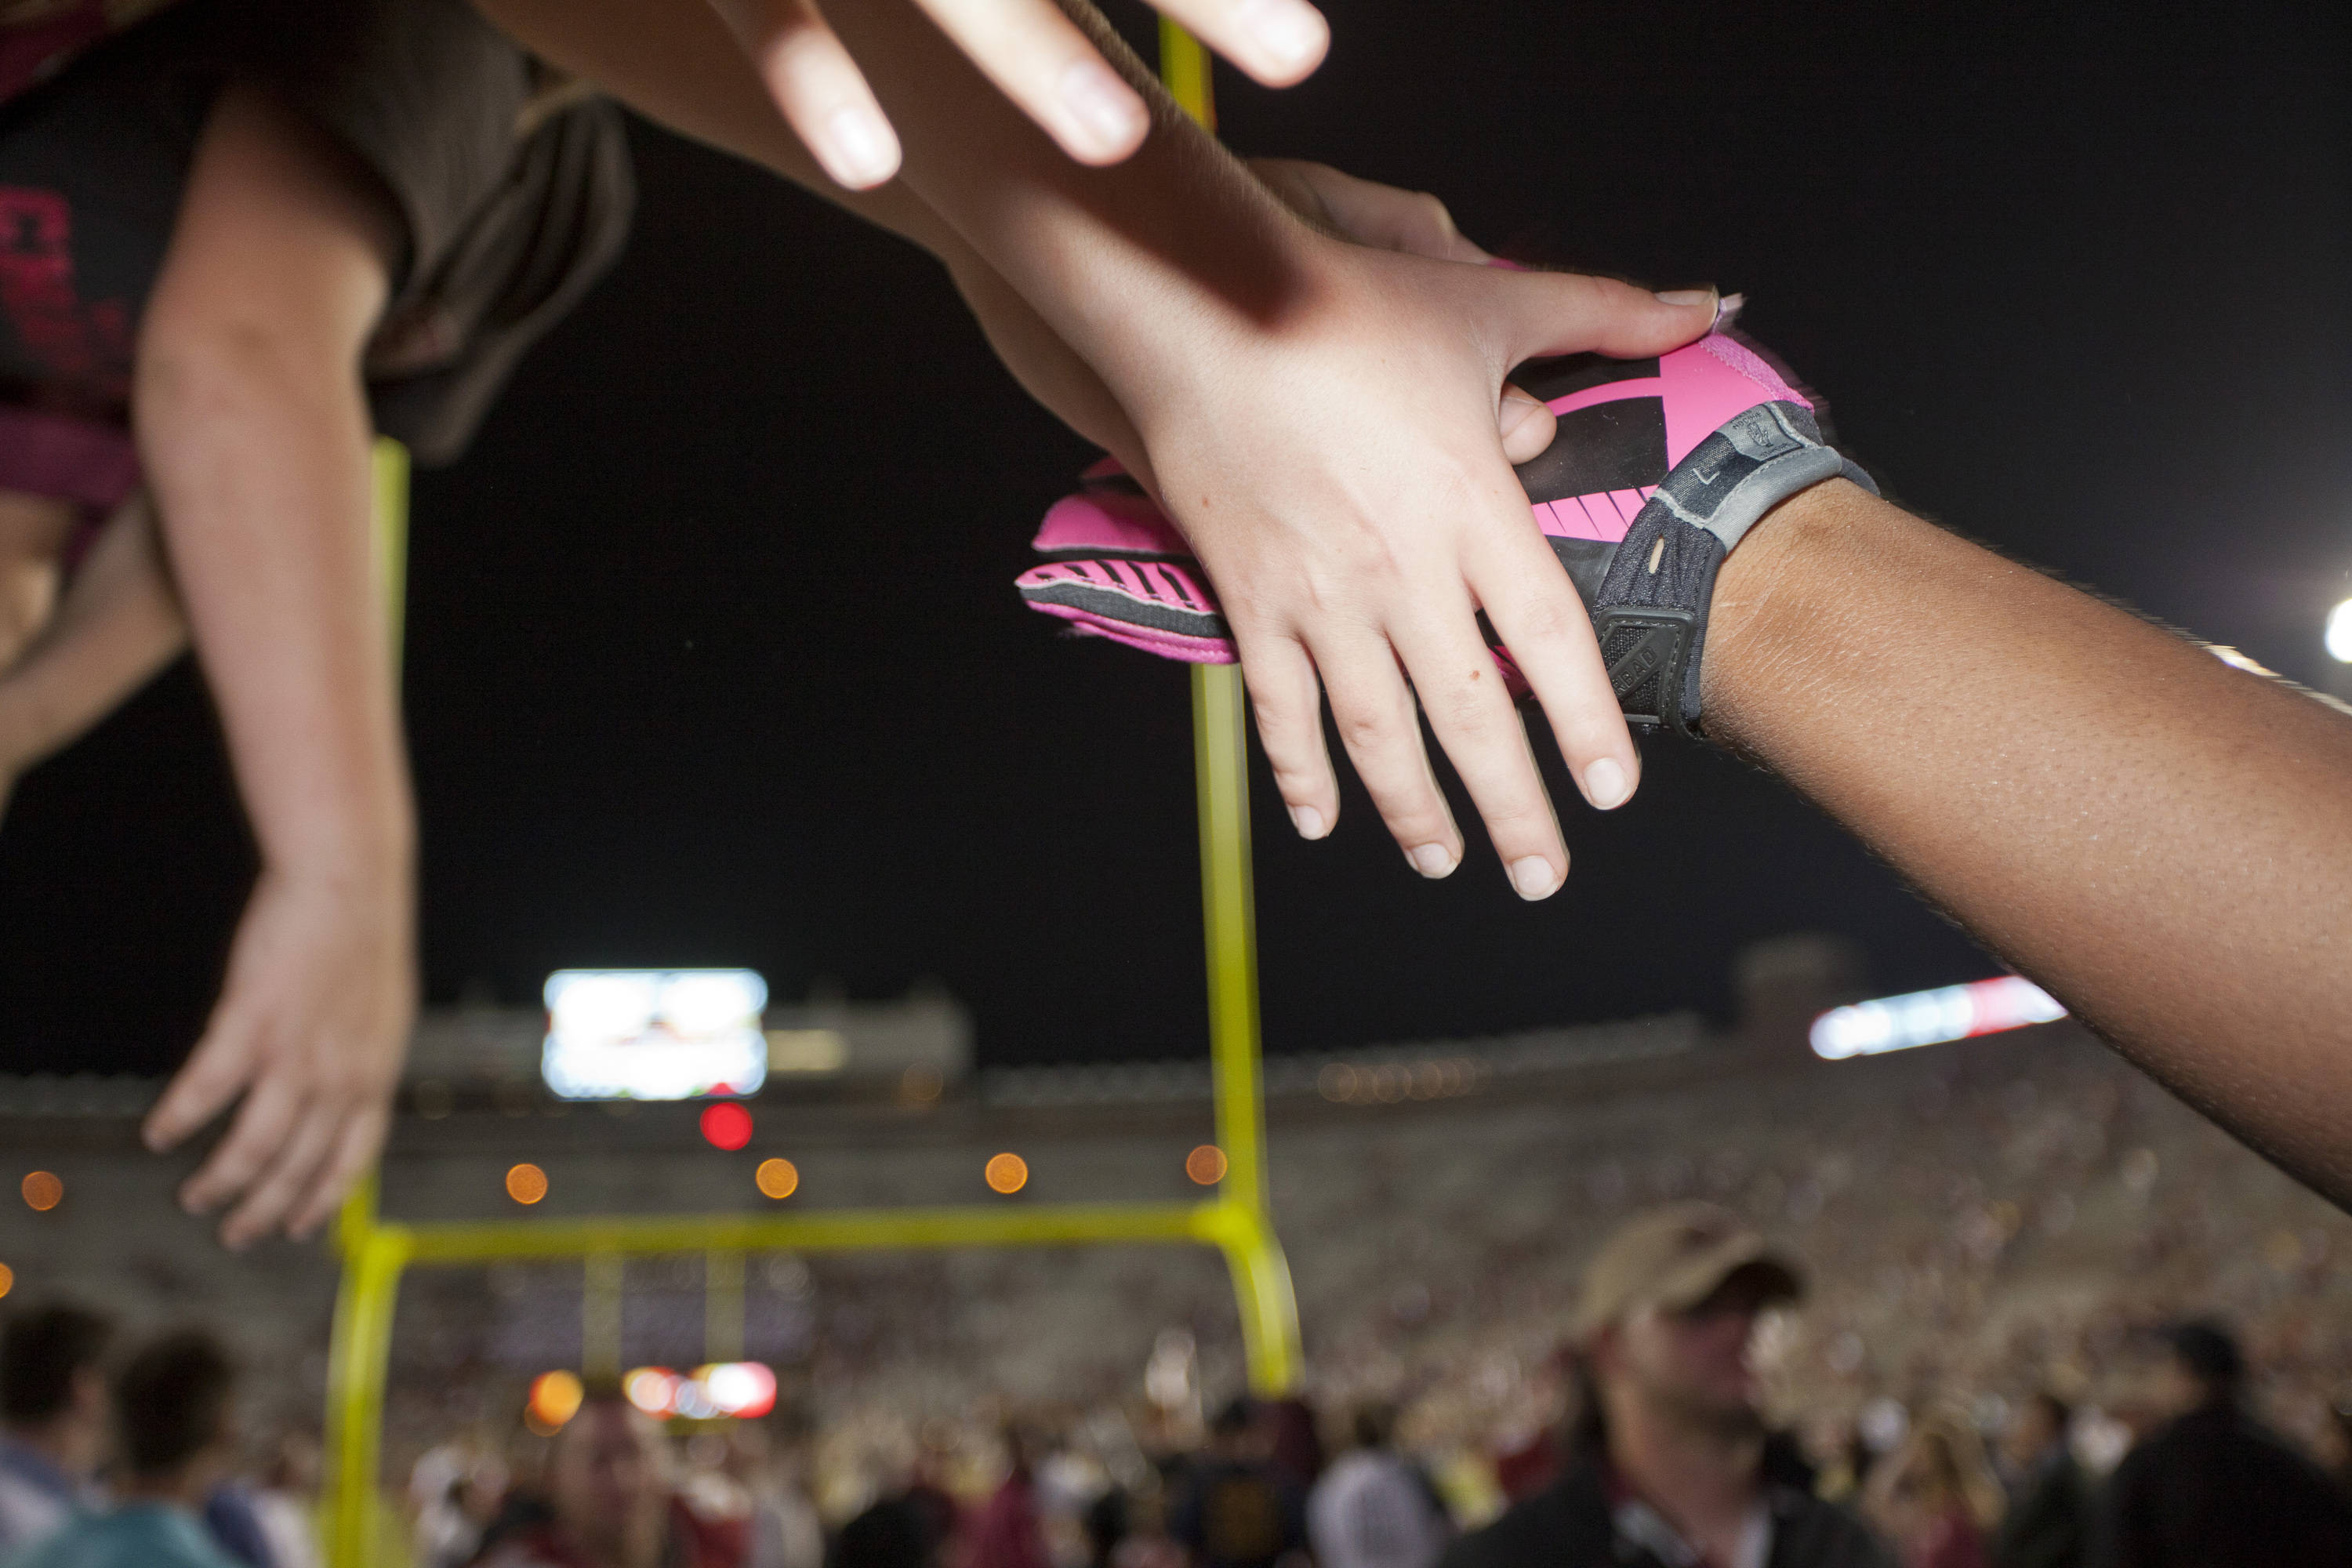 An FSU player high fives fans after the FSU vs Boston College football game on October 13, 2012 in Tallahassee, Fla.